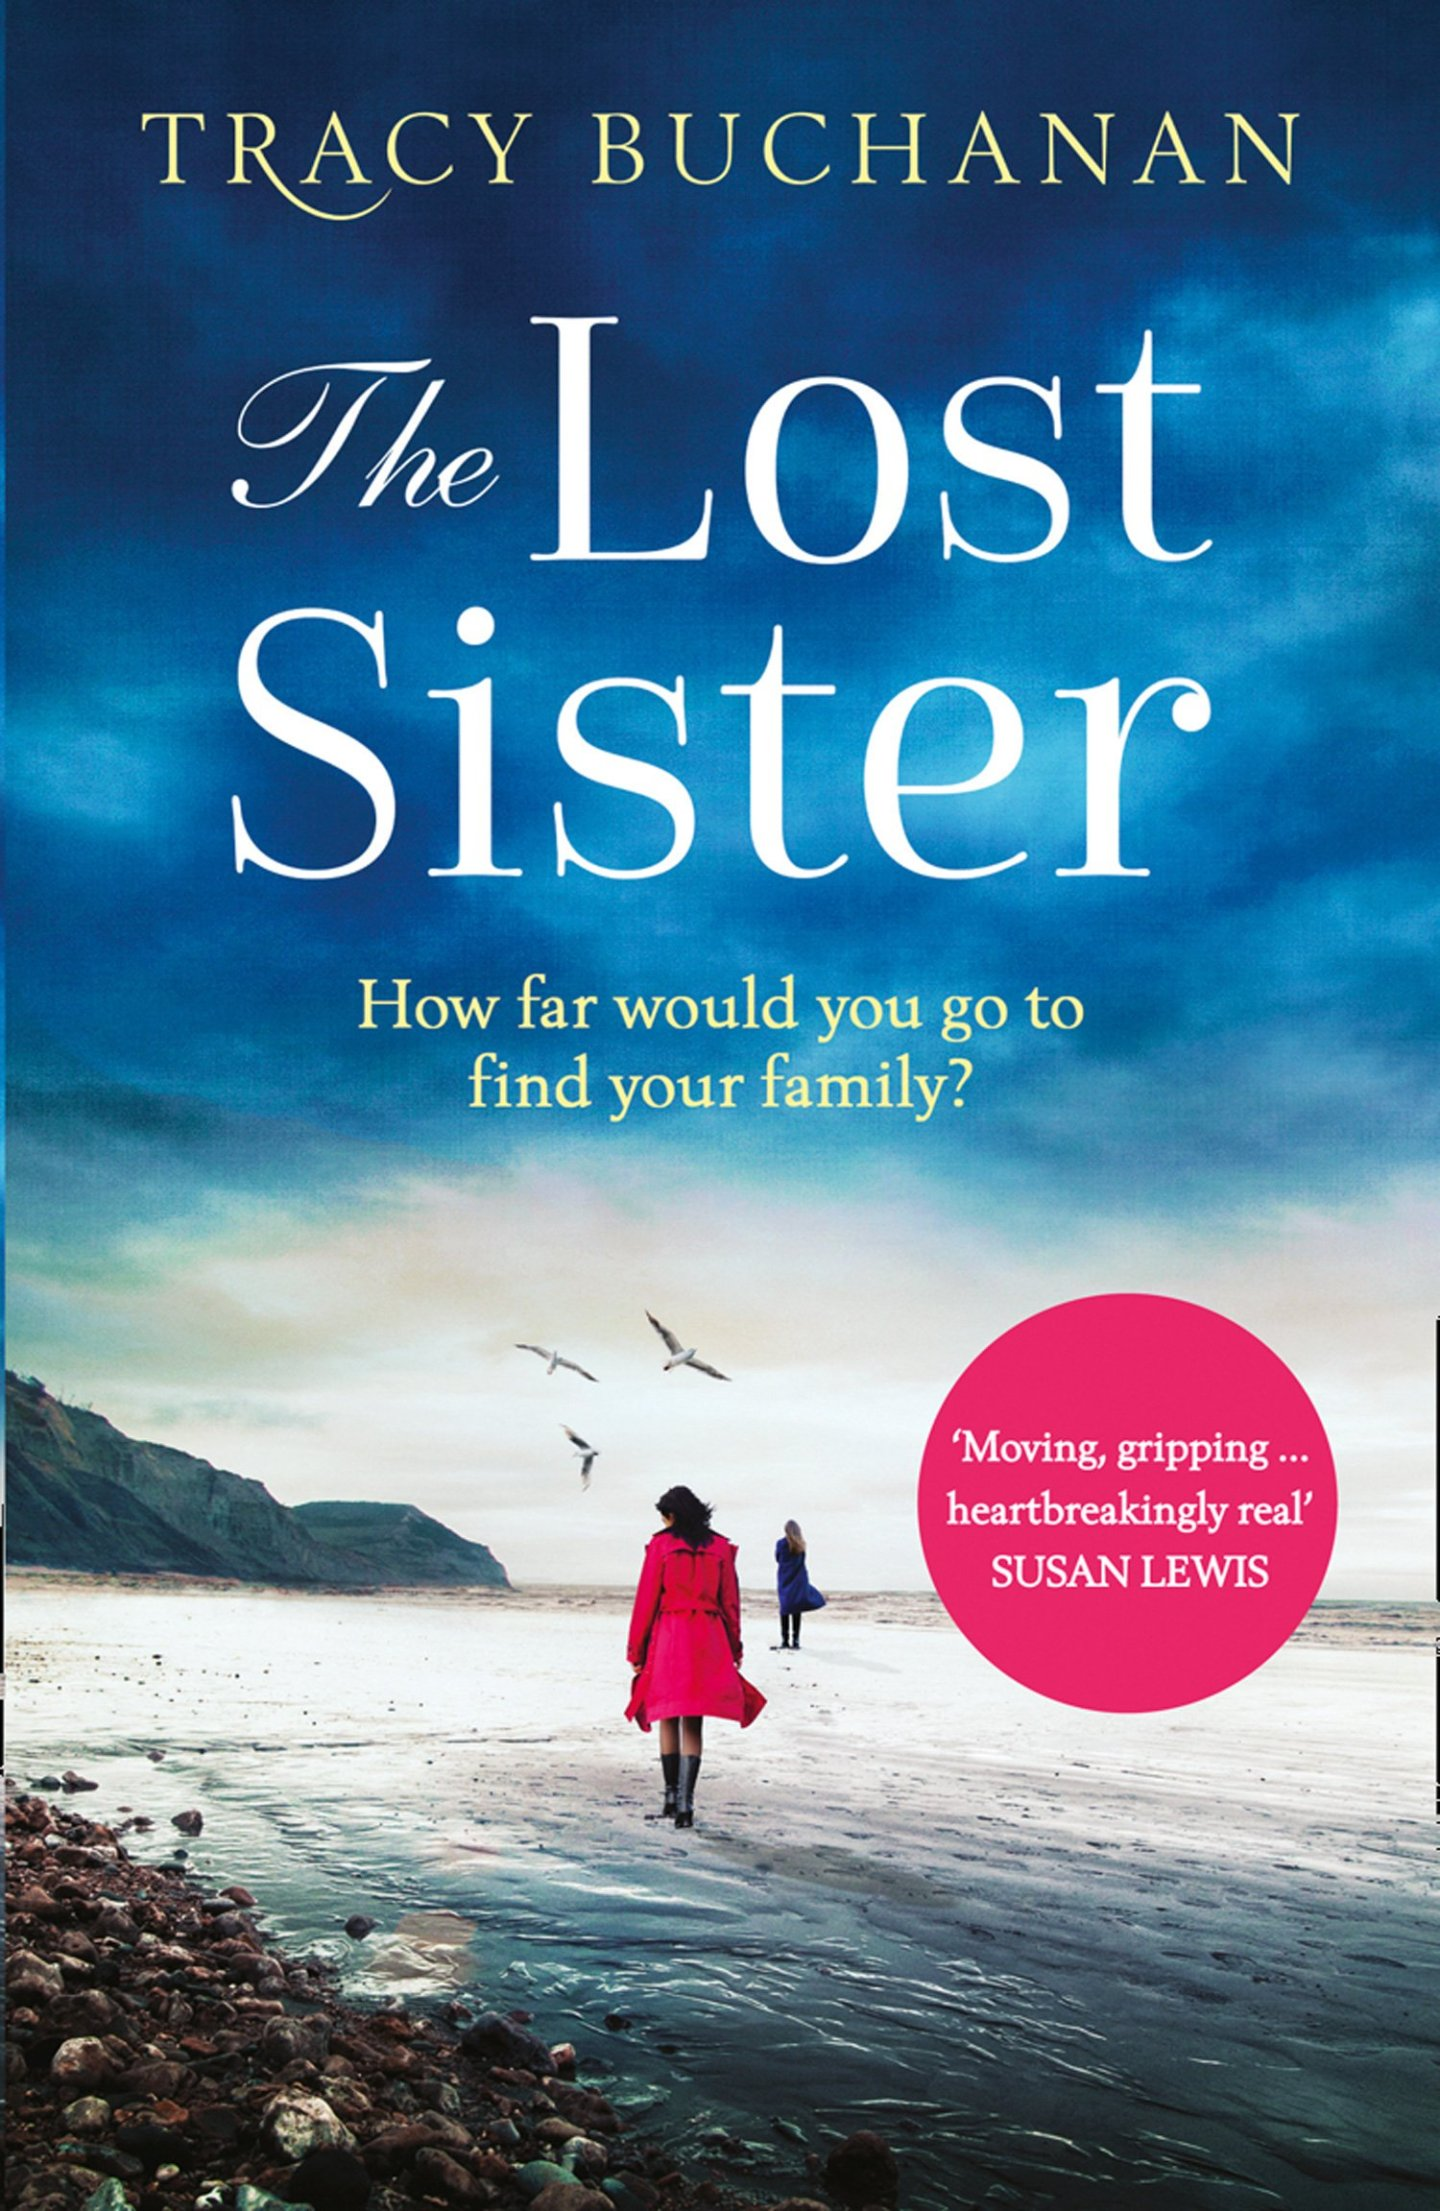 Bookworm: The Lost Sister By Tracy Buchanan